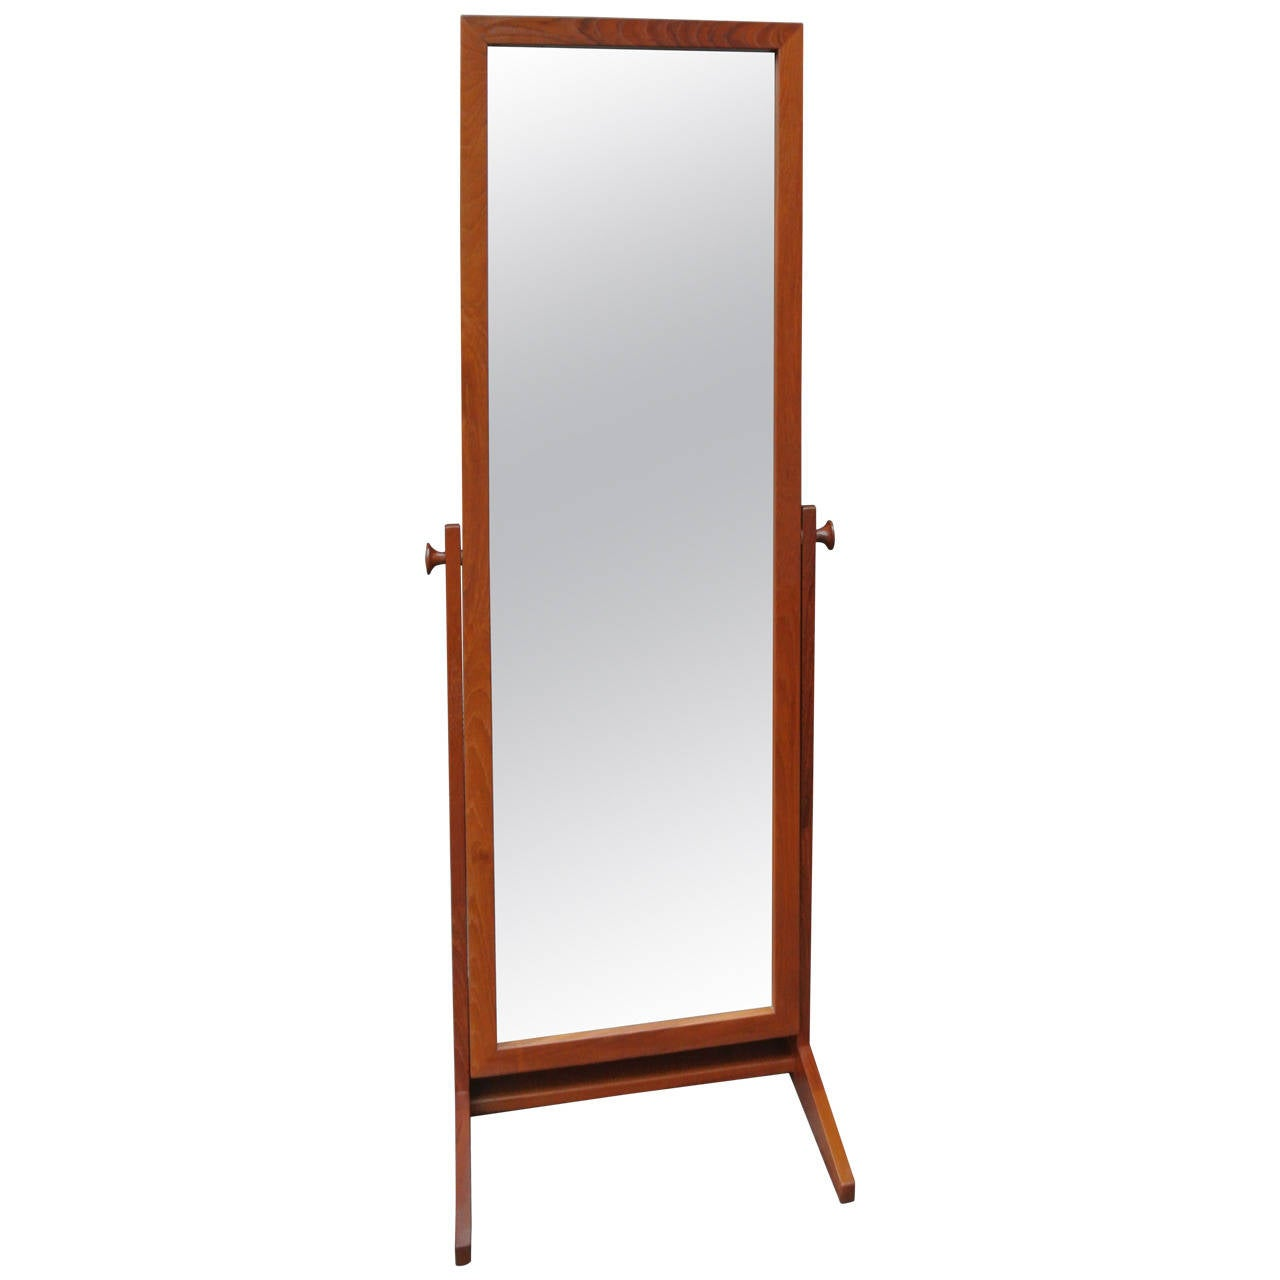 Full length teak mirror by pedersen and hansen for sale at for Floor length mirror for sale